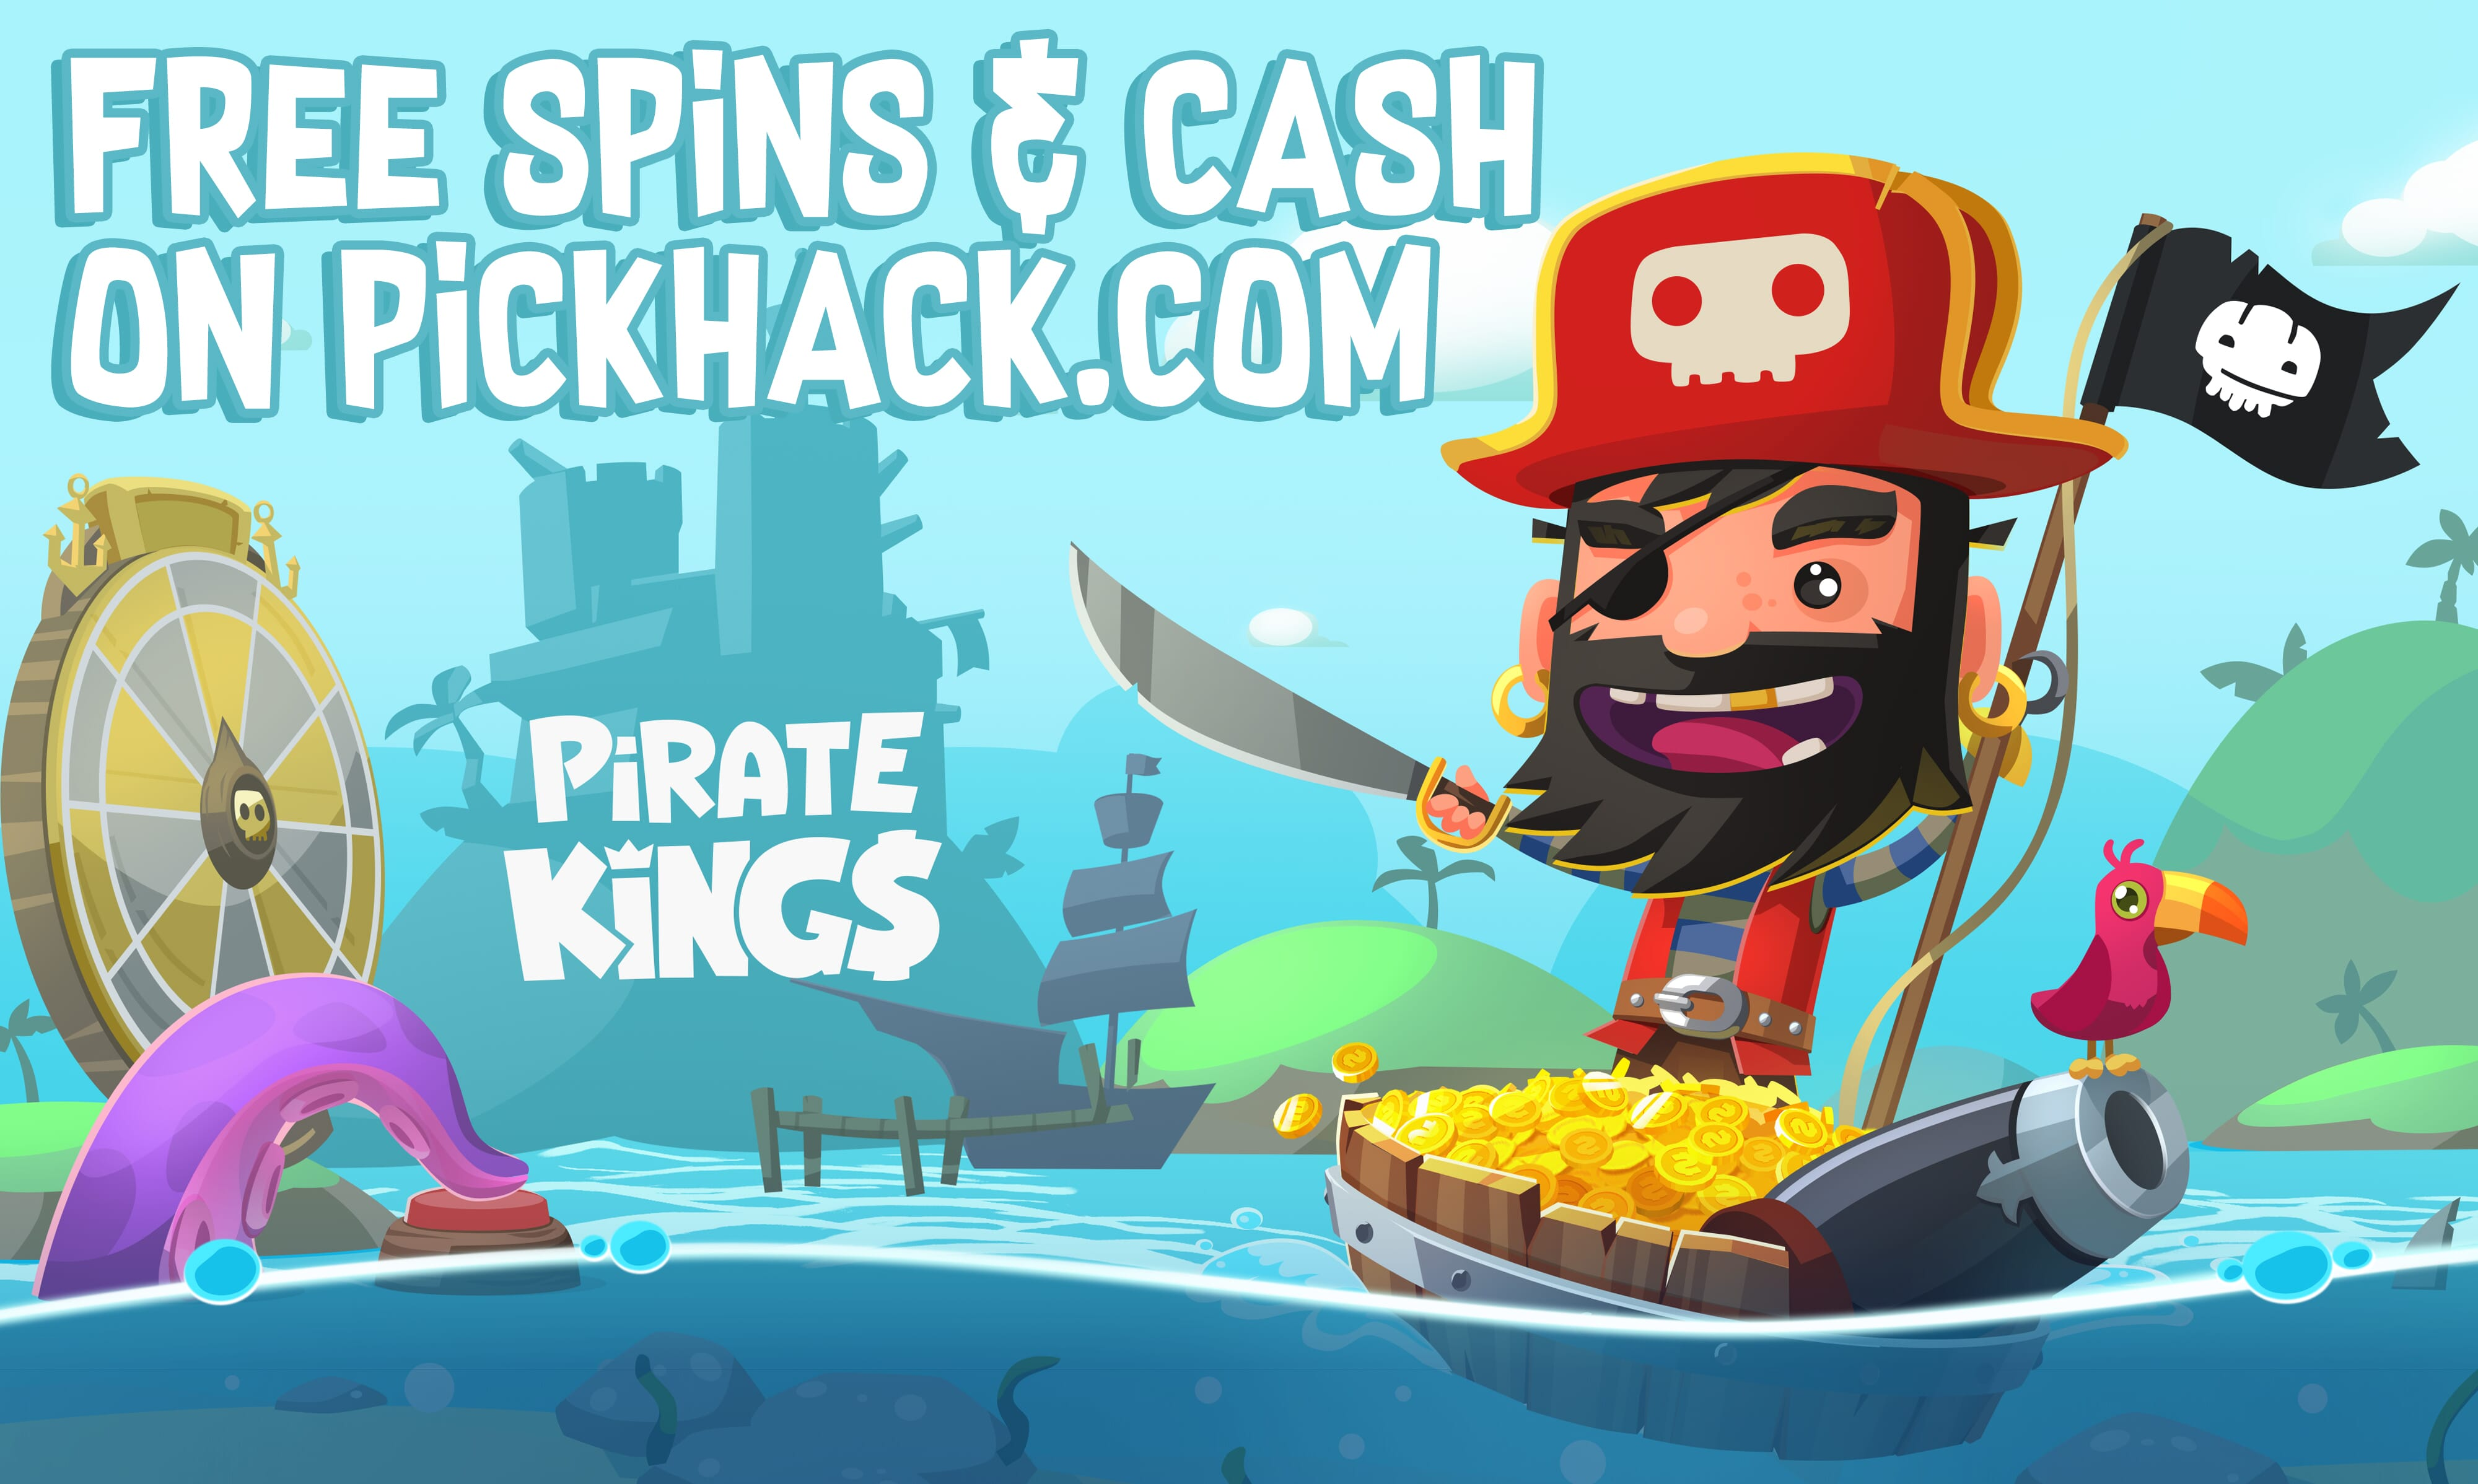 Image currently unavailable. Go to www.generator.pickhack.com and choose Pirate Kings image, you will be redirect to Pirate Kings Generator site.